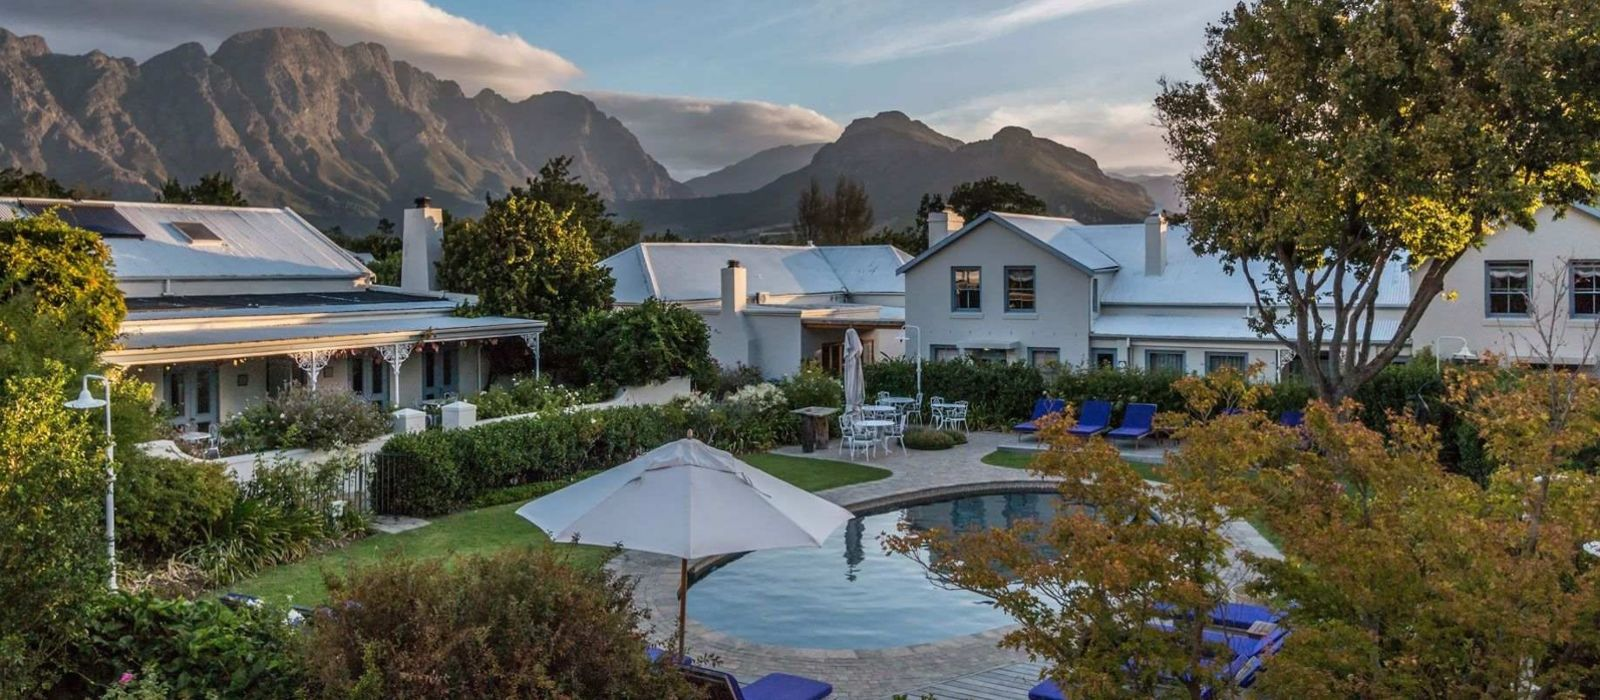 Le Quartier Francais Hotel in South Africa | ENCHANTING TRAVELS